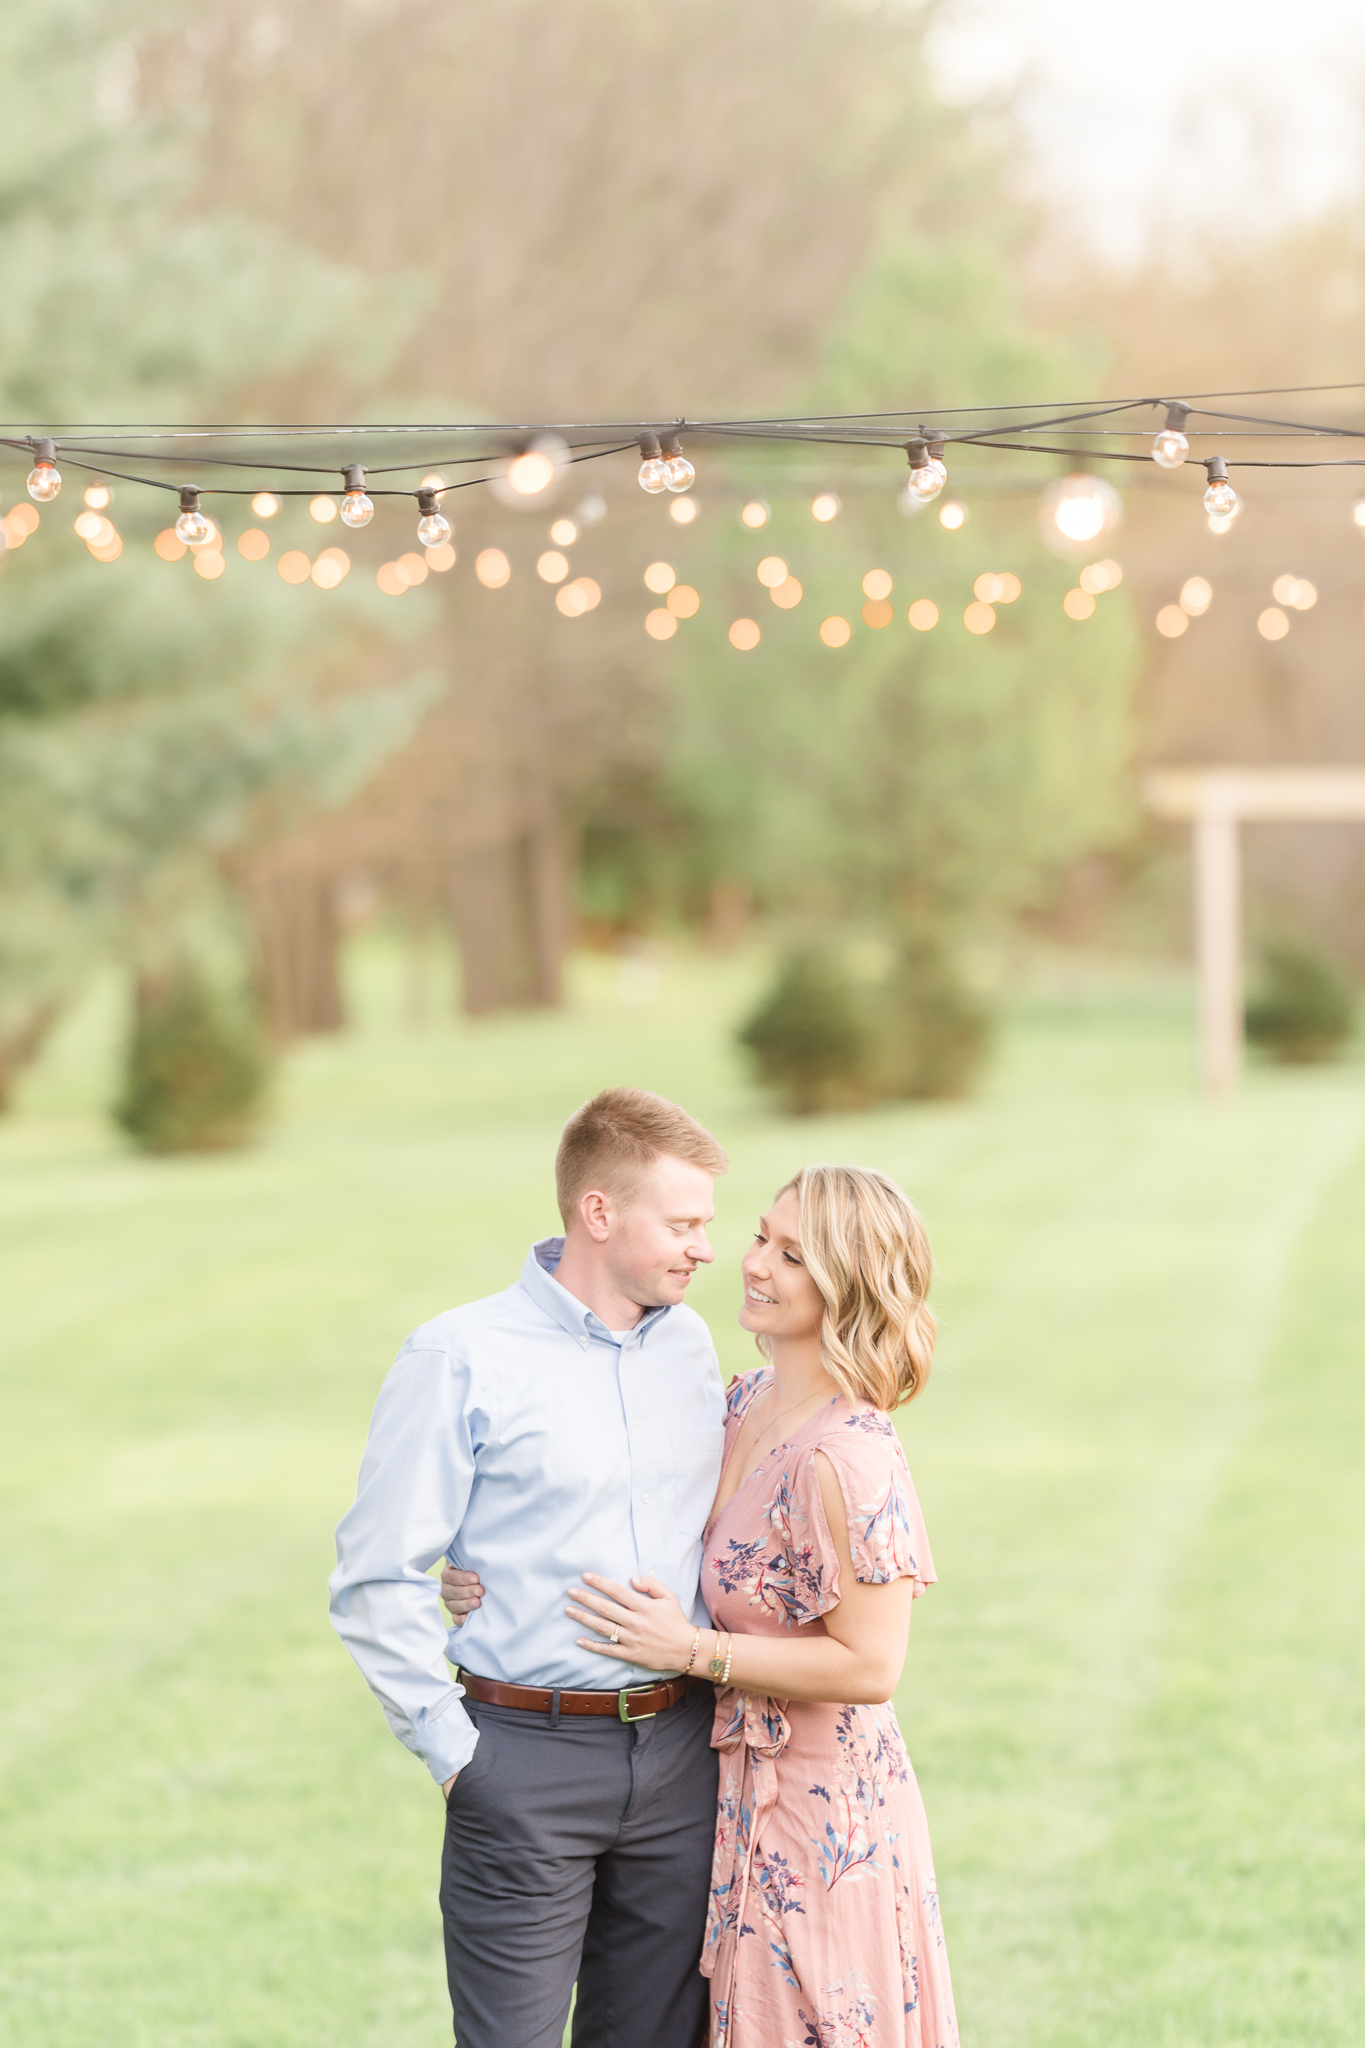 Richie Woods Nature Preserve and Mustard Seed Gardens Engagement Session Wedding Photos-33.jpg